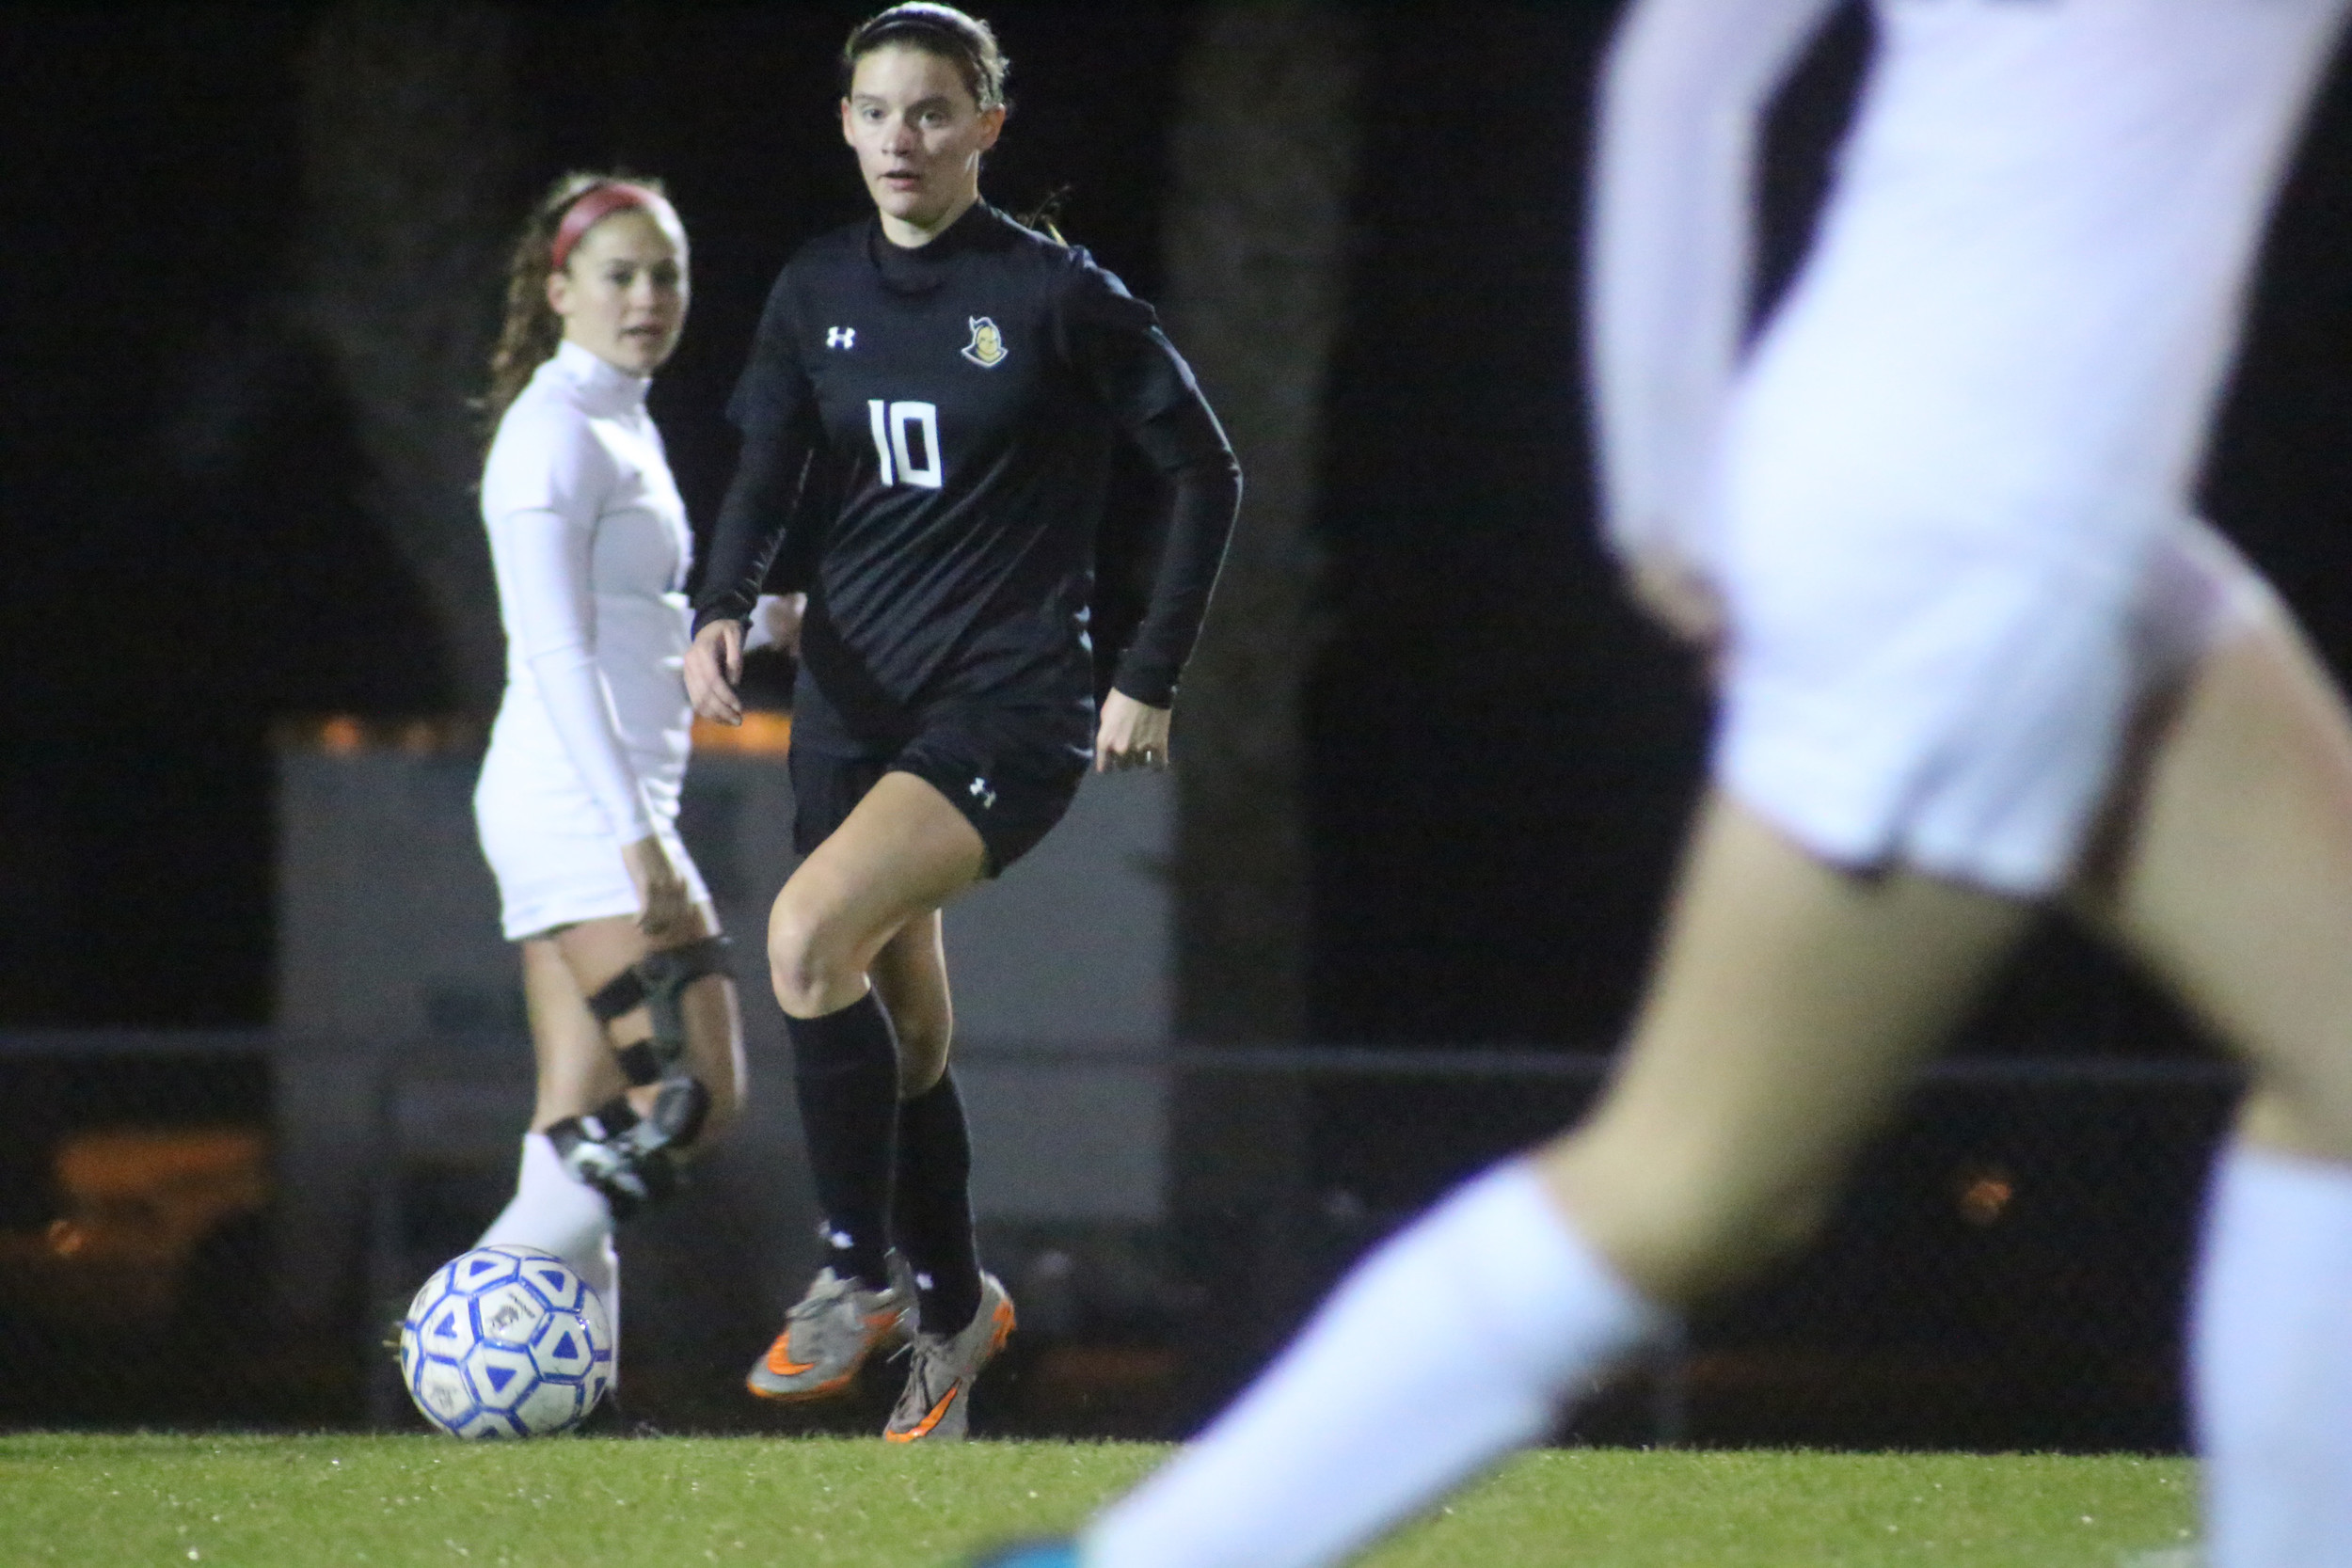 Oakleaf High senior Lindsay Patton scored first goal for Knights but found passing lanes crowded as Bartram Trail won 5-2 to end Oakleaf's season.